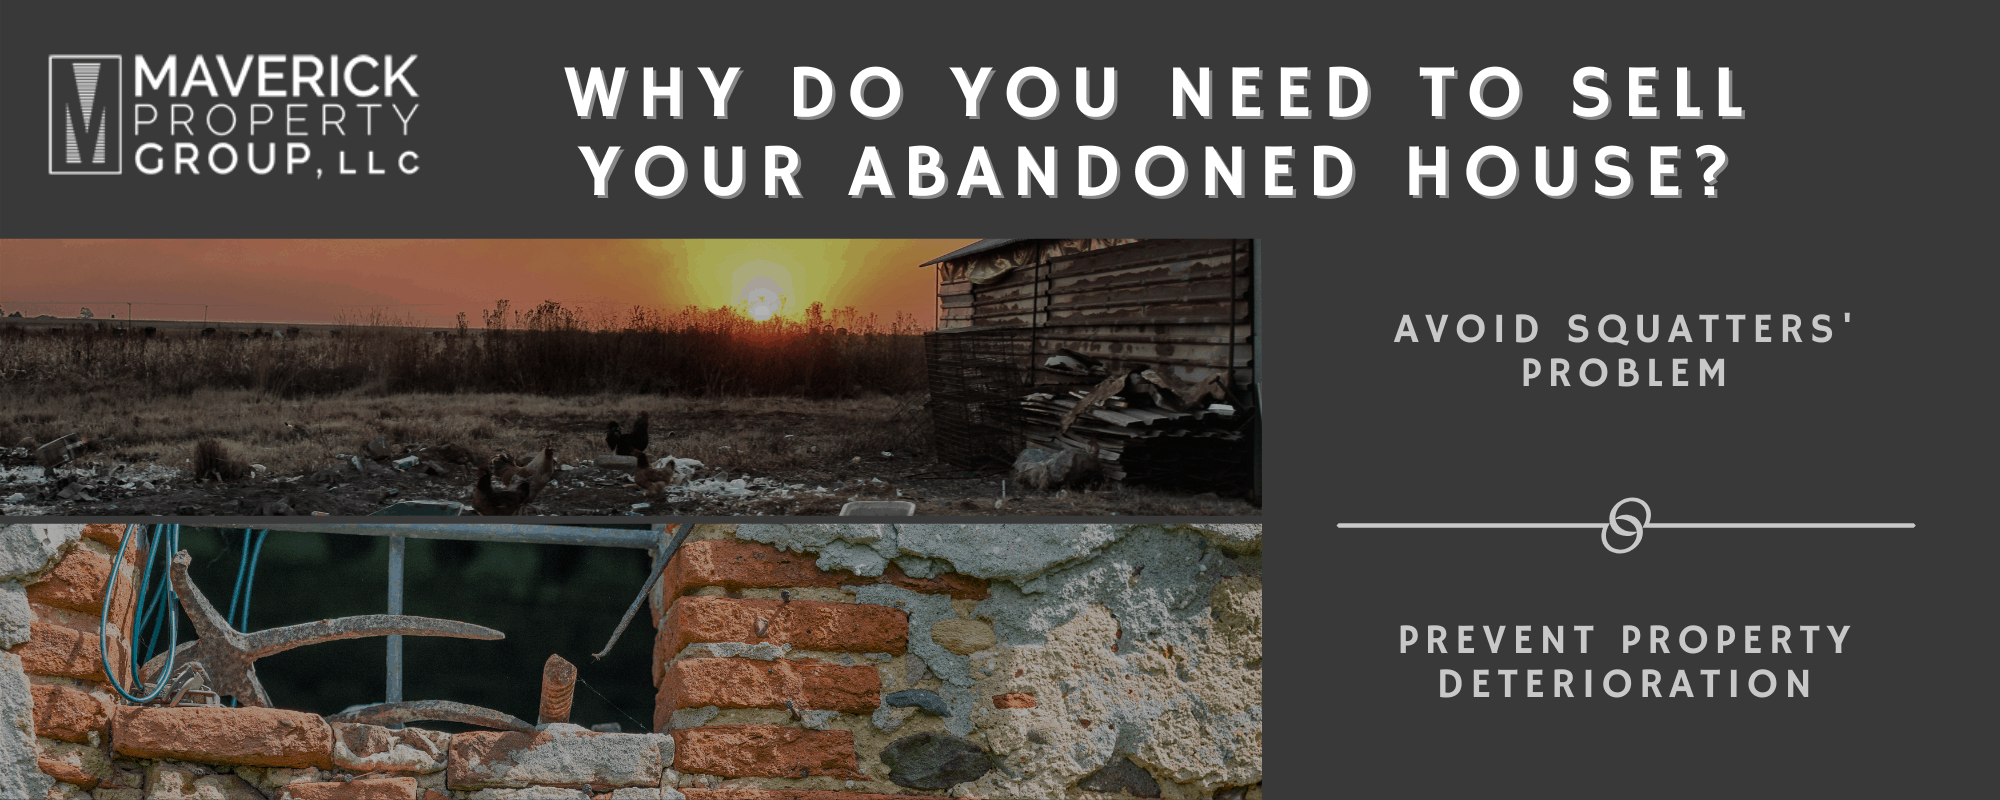 Why Should You Sell Your Abandoned House